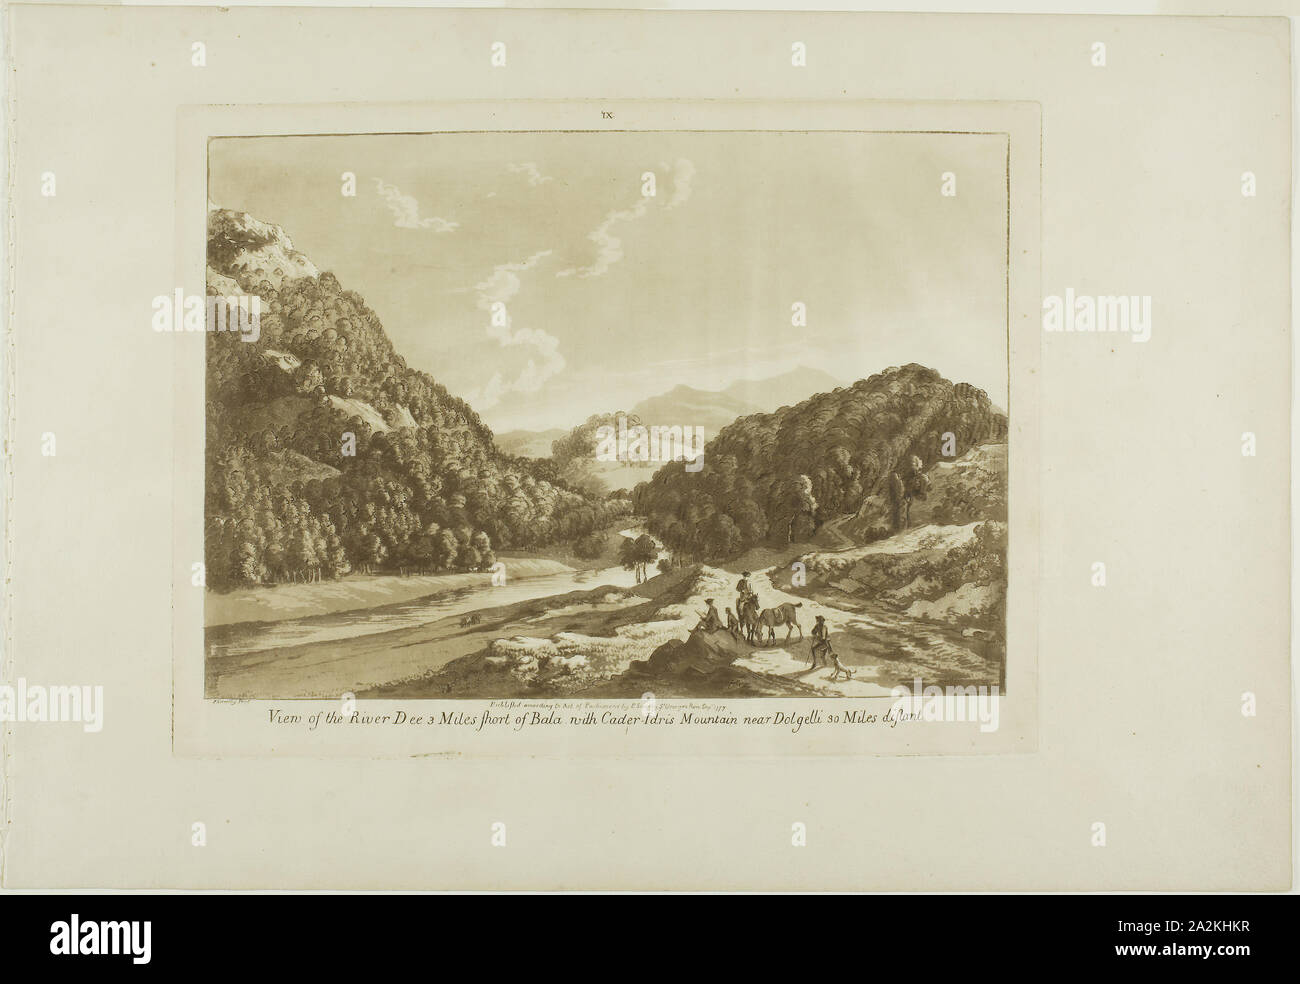 View of the River Dee 3 Miles Short of Bala, with Cadar-Idris Mountain near Dolgelli 30 Miles Distant, 1776, Paul Sandby, English, 1731-1809, England, Aquatint on cream laid paper, 237 × 314 mm (plate), 320 × 463 mm (sheet Stock Photo